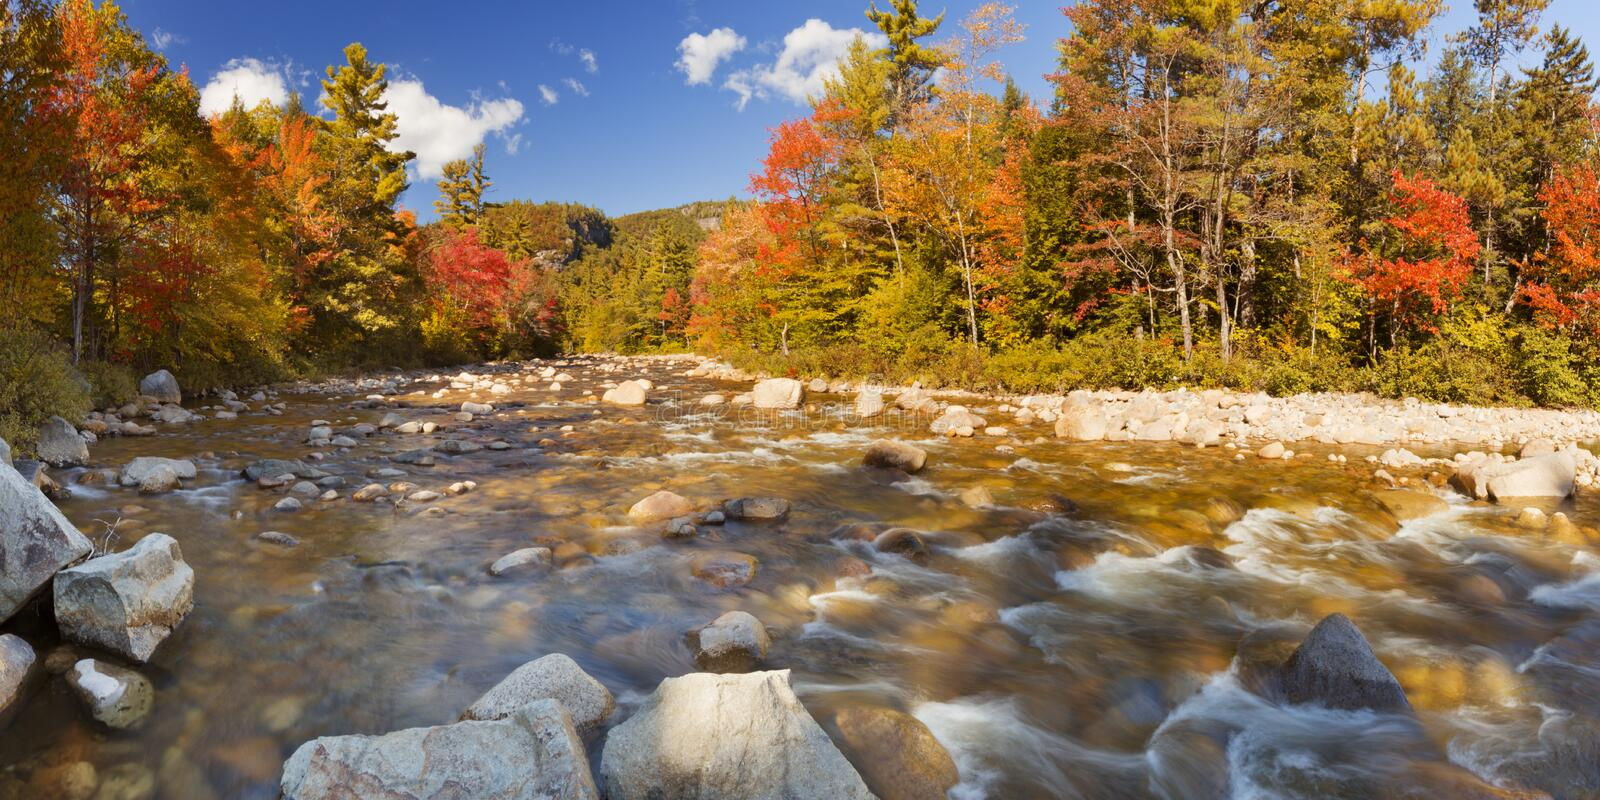 River through fall foliage, Swift River, New Hampshire, USA stock photo